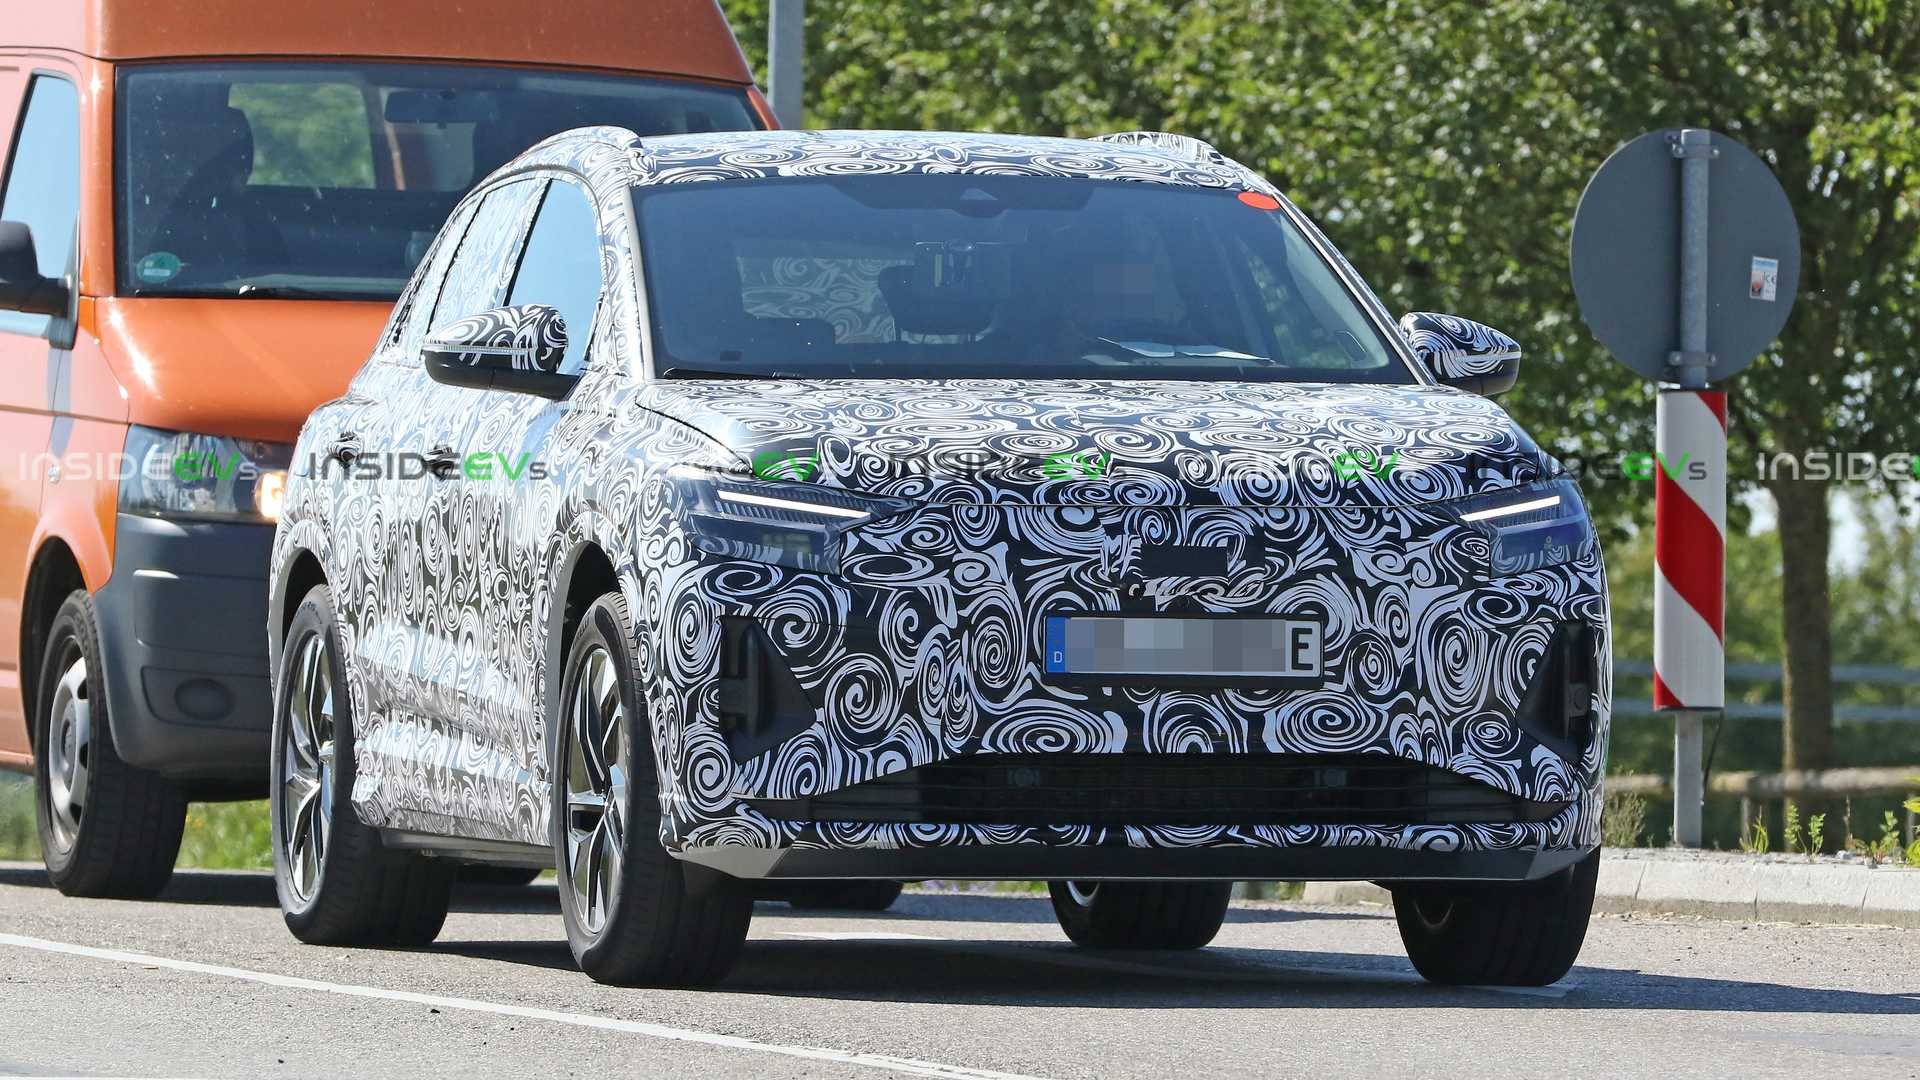 Audi Q4 e-tron, The Audi Version Of the VW ID.4, Spotted ...